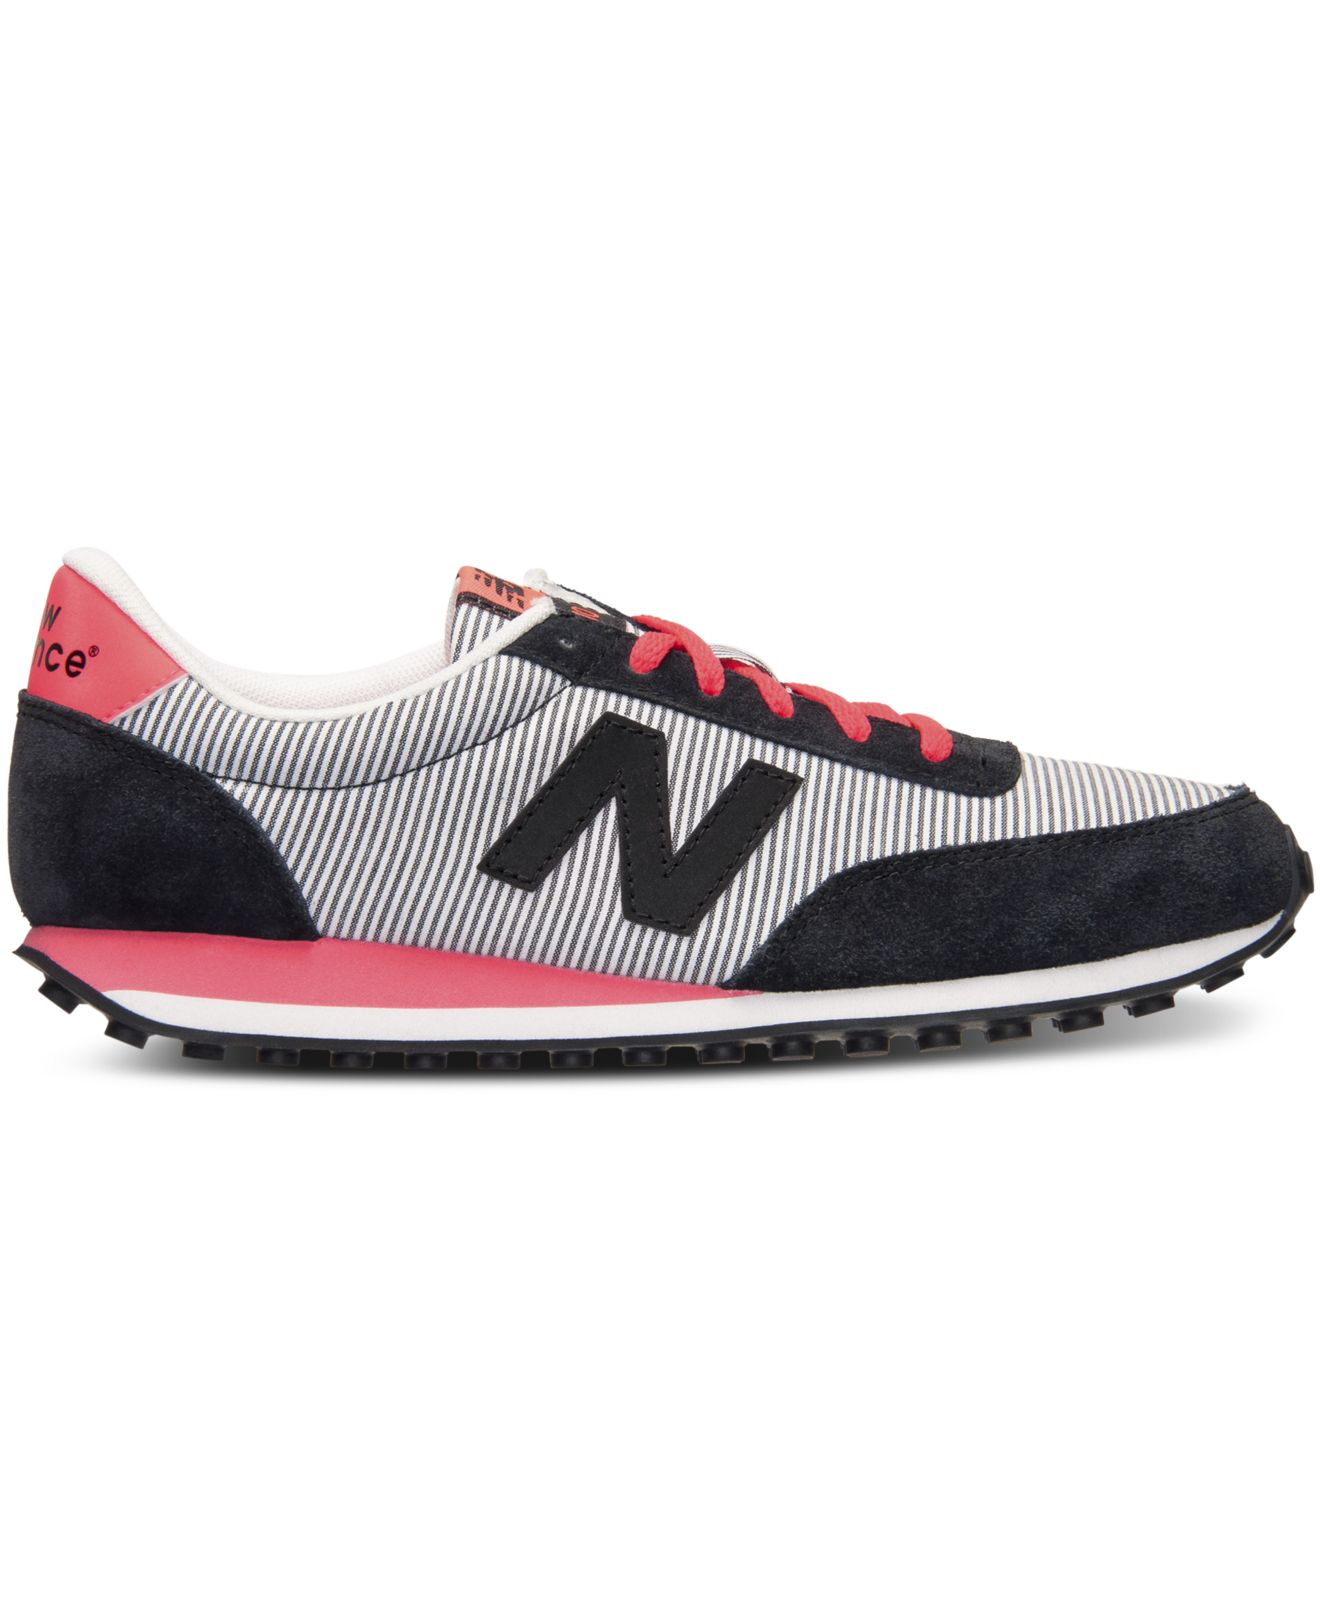 pretty nice ef623 b38ee release date 410 womens 410 classic red atlantic new balance shoes 9e0ab  45a45  uk gallery. previously sold at macys womens new balance 410 b1d69  10f83